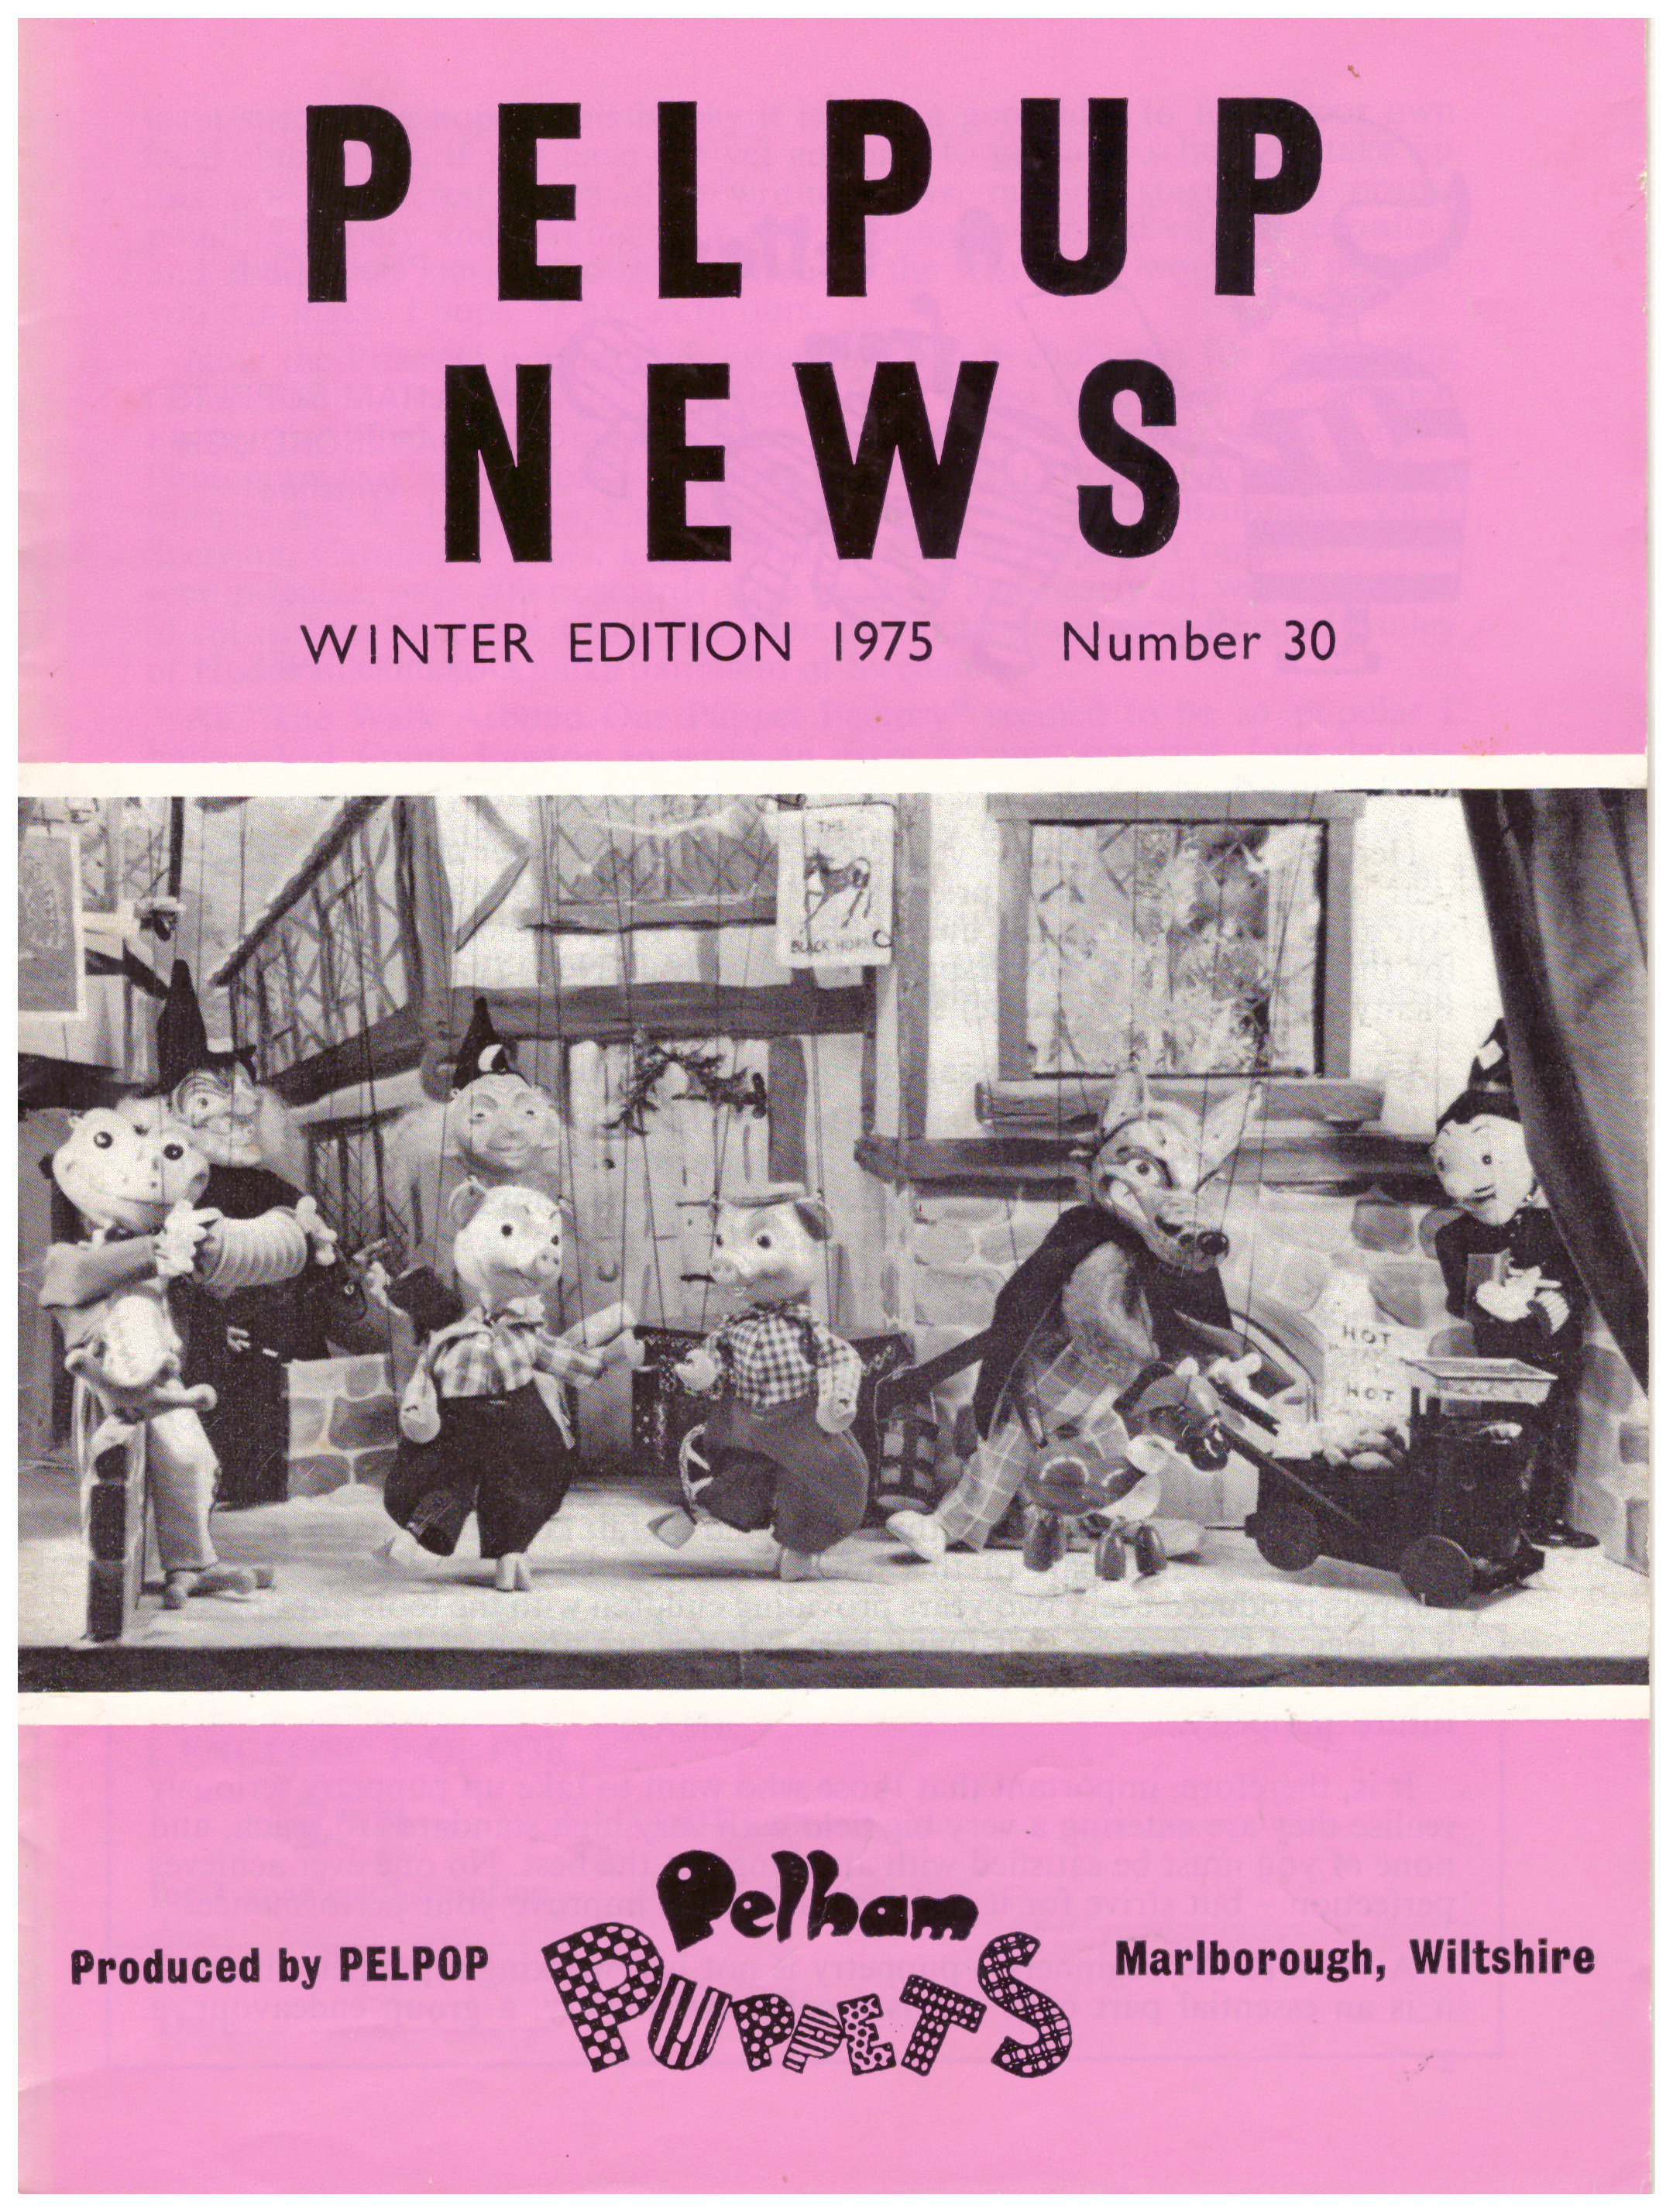 Winter Edition 1975 Number 30